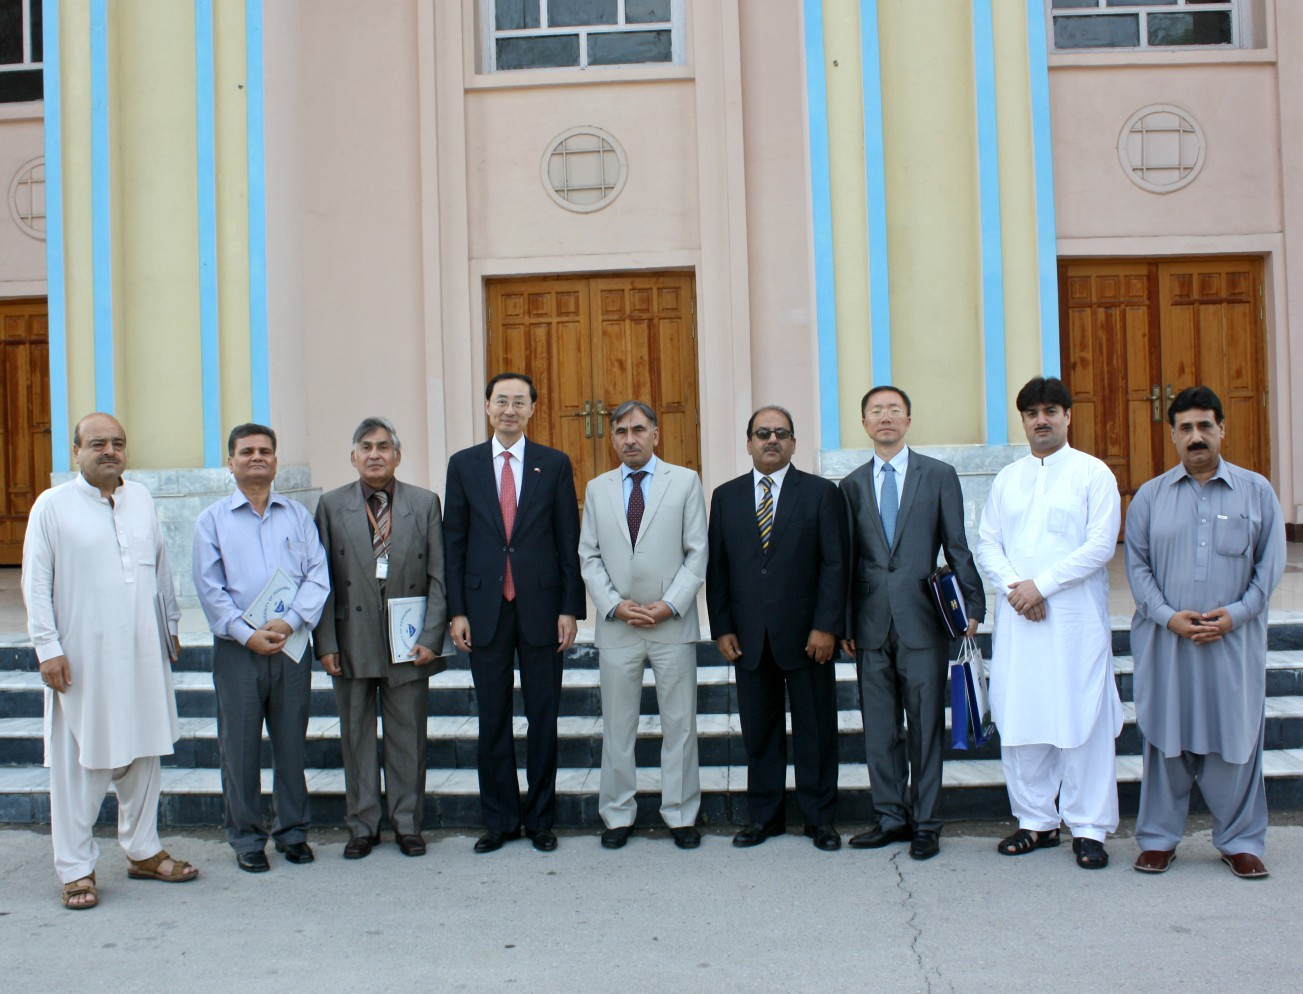 His Excelency Sun Weidong  in group photo with VC UoP during his visit at the University of Peshawar